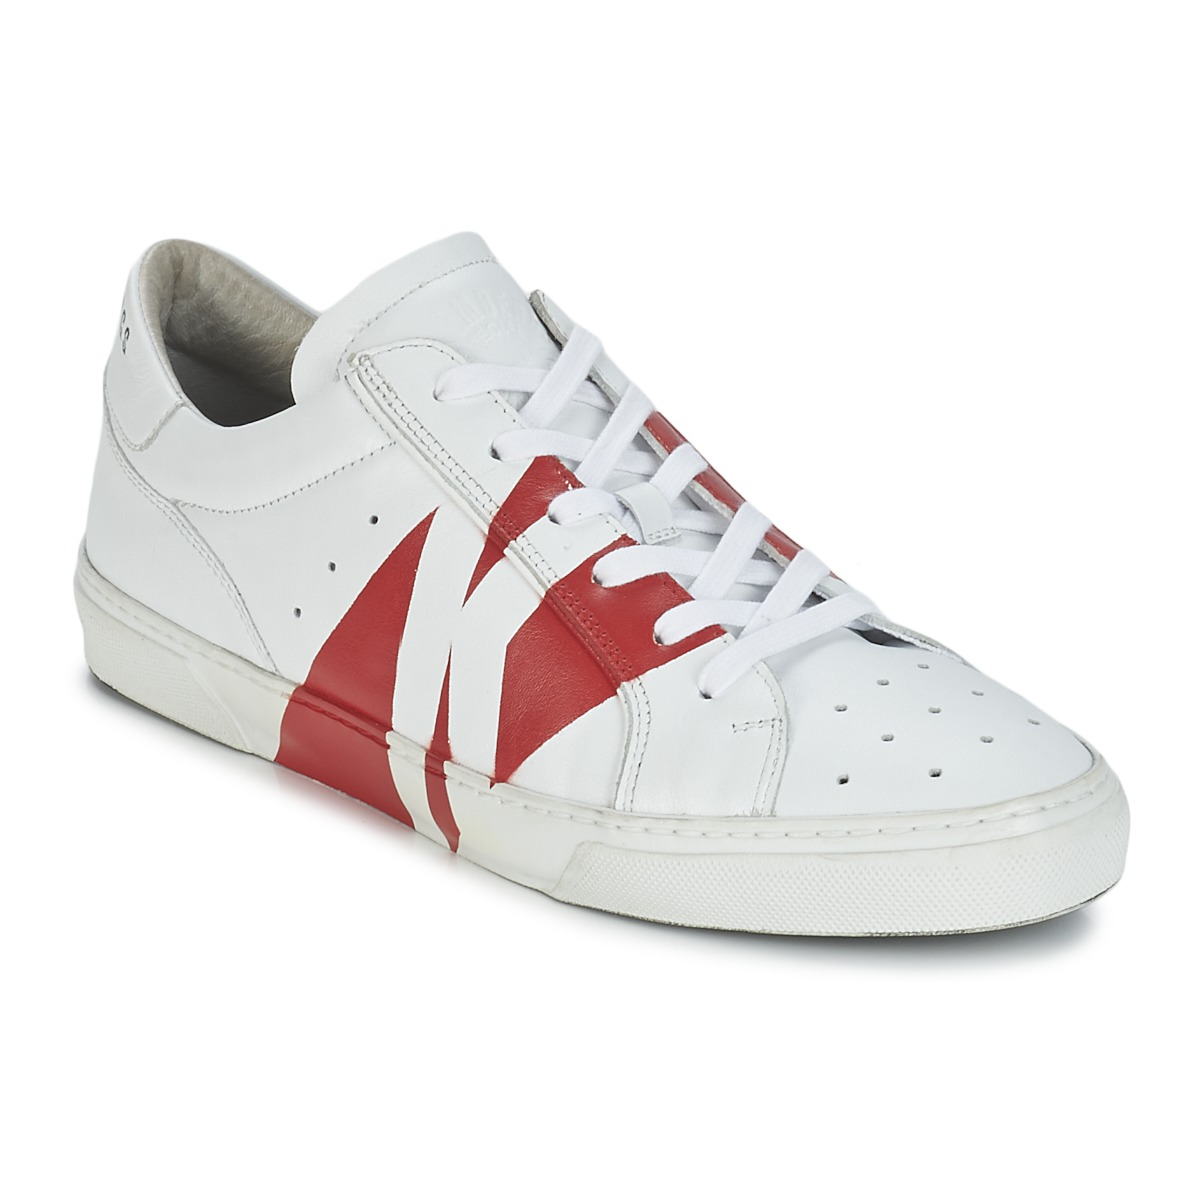 Bikkembergs RUBB-ER 668 LEATHER Blanc / Rouge